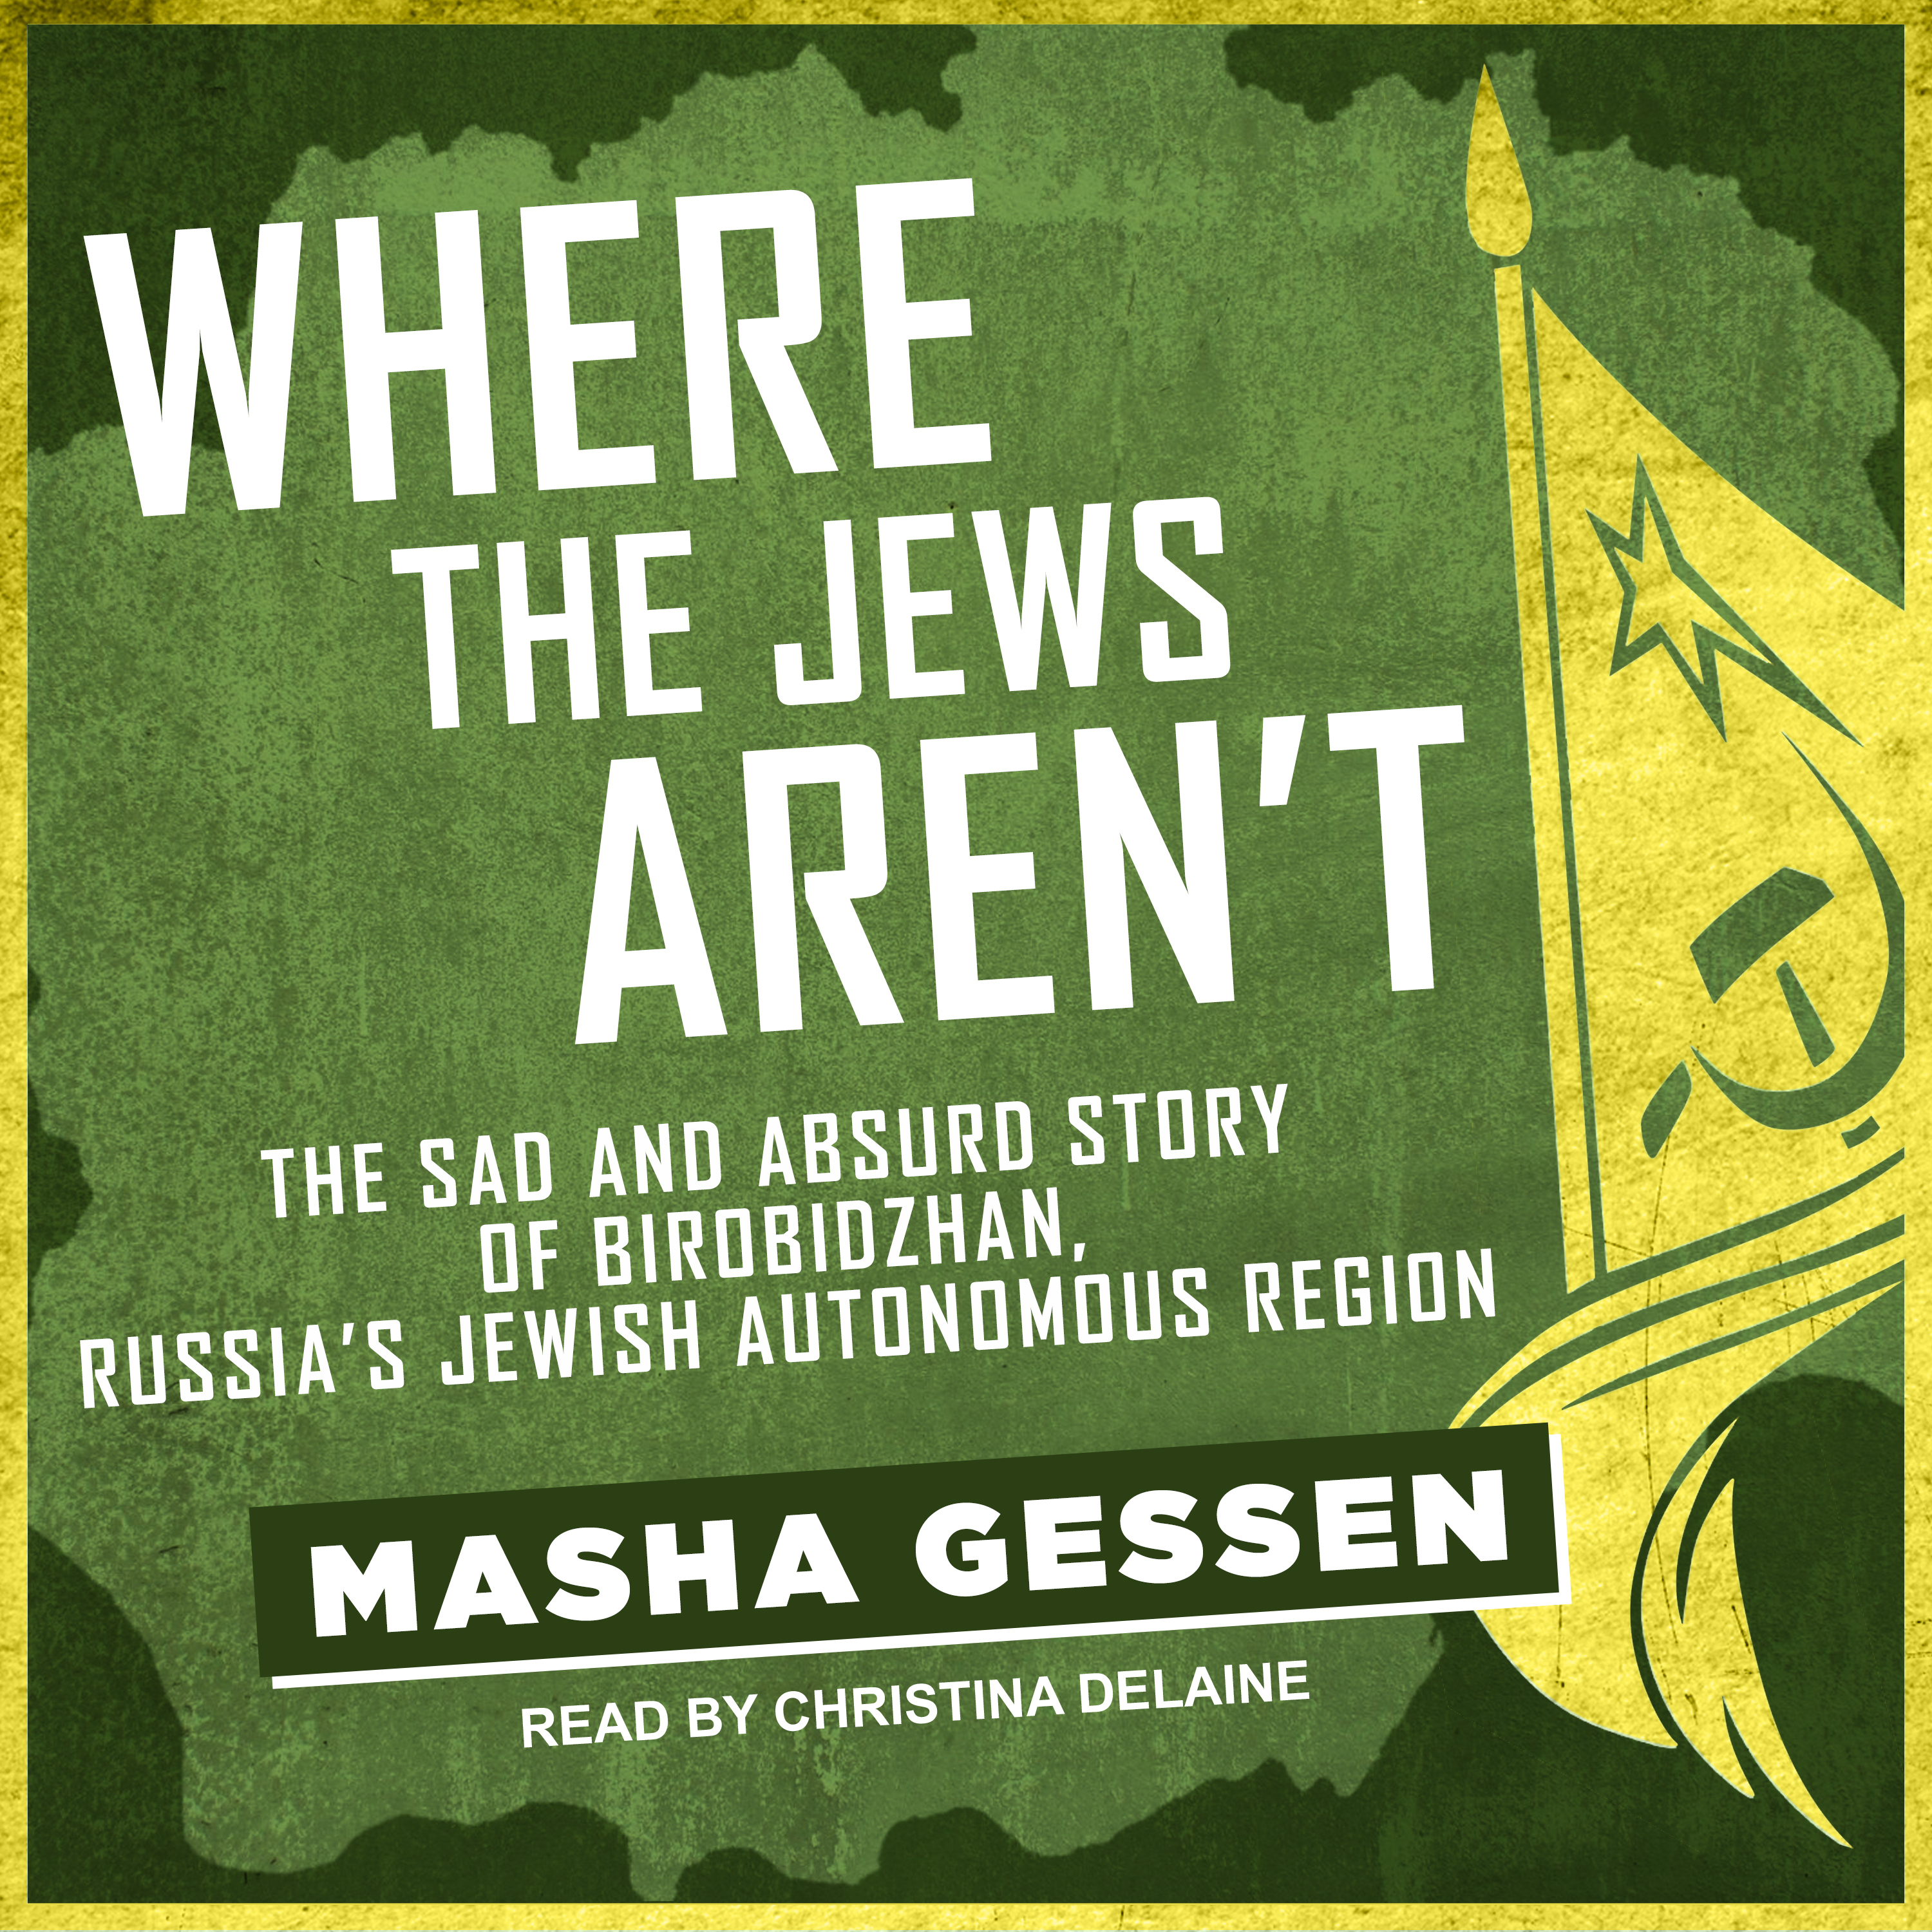 Printable Where the Jews Aren't: The Sad and Absurd Story of Birobidzhan, Russia's Jewish Autonomous Region Audiobook Cover Art